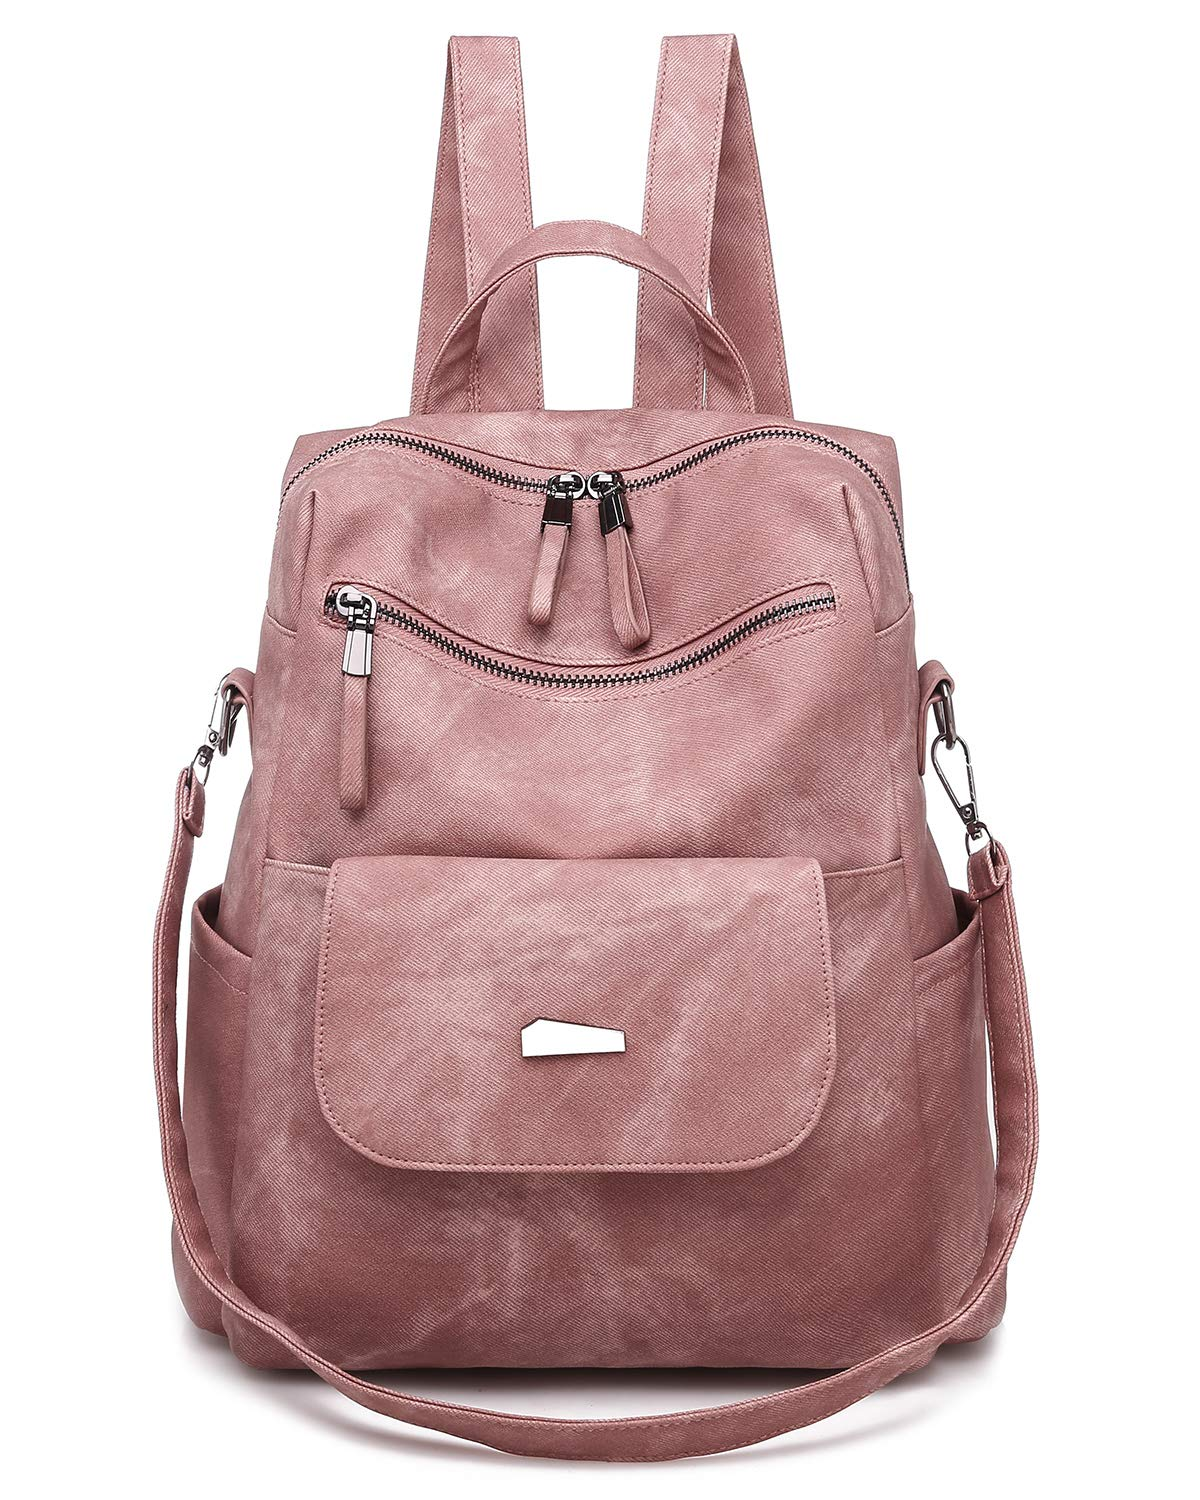 Qyoubi Women's New Fashion Backpack Purse Anti-theft Girls Shopping Daypack Casual Convertible Multipurpose Travel Bag